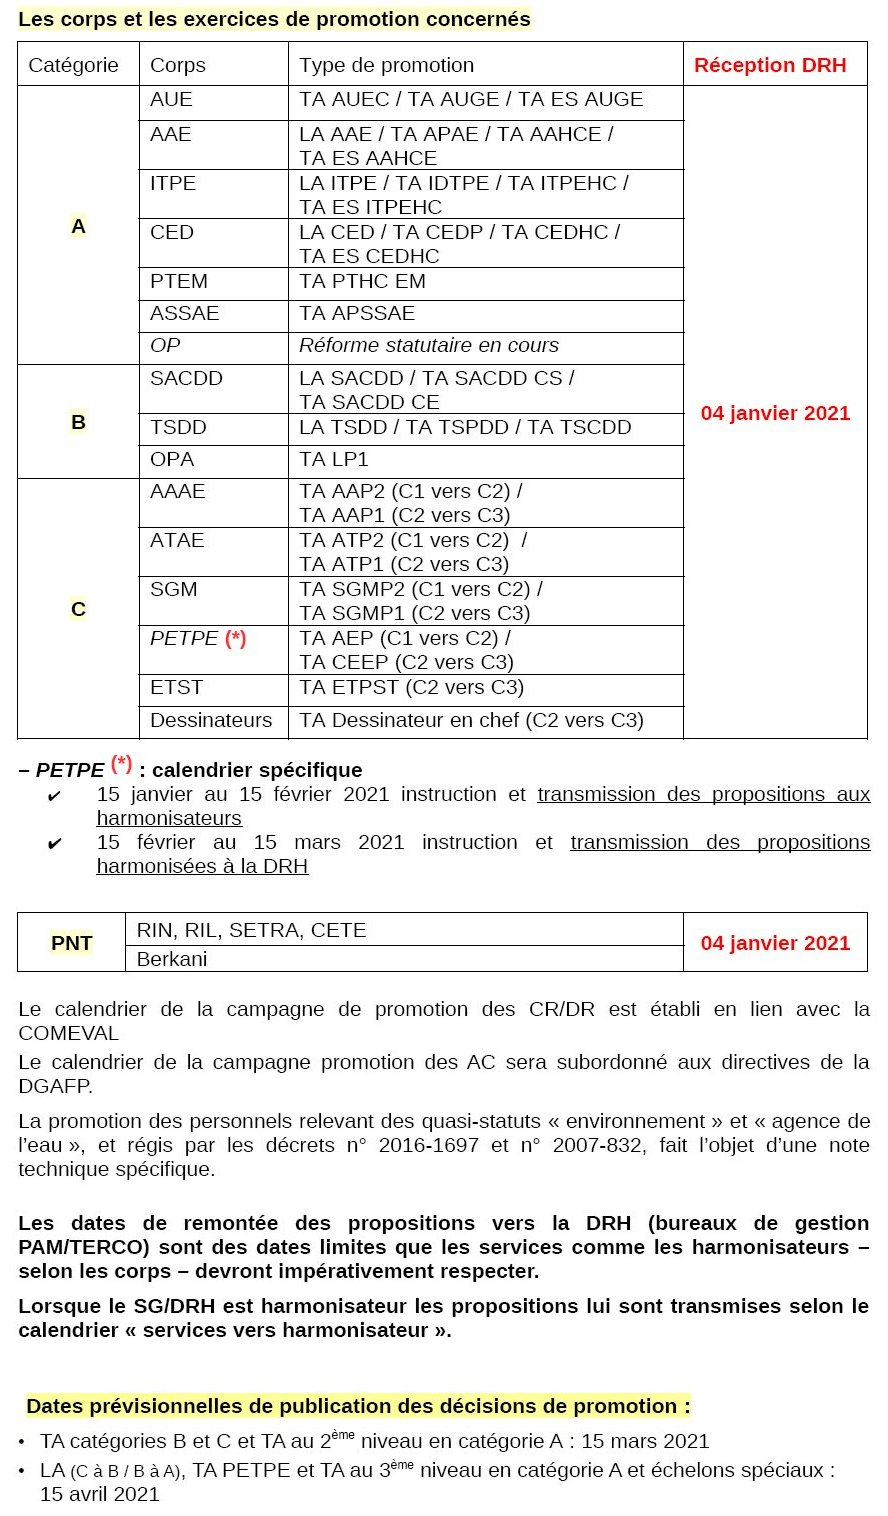 PROMOTIONS 2021 : Modification du calendrier de mise en œuvre (09